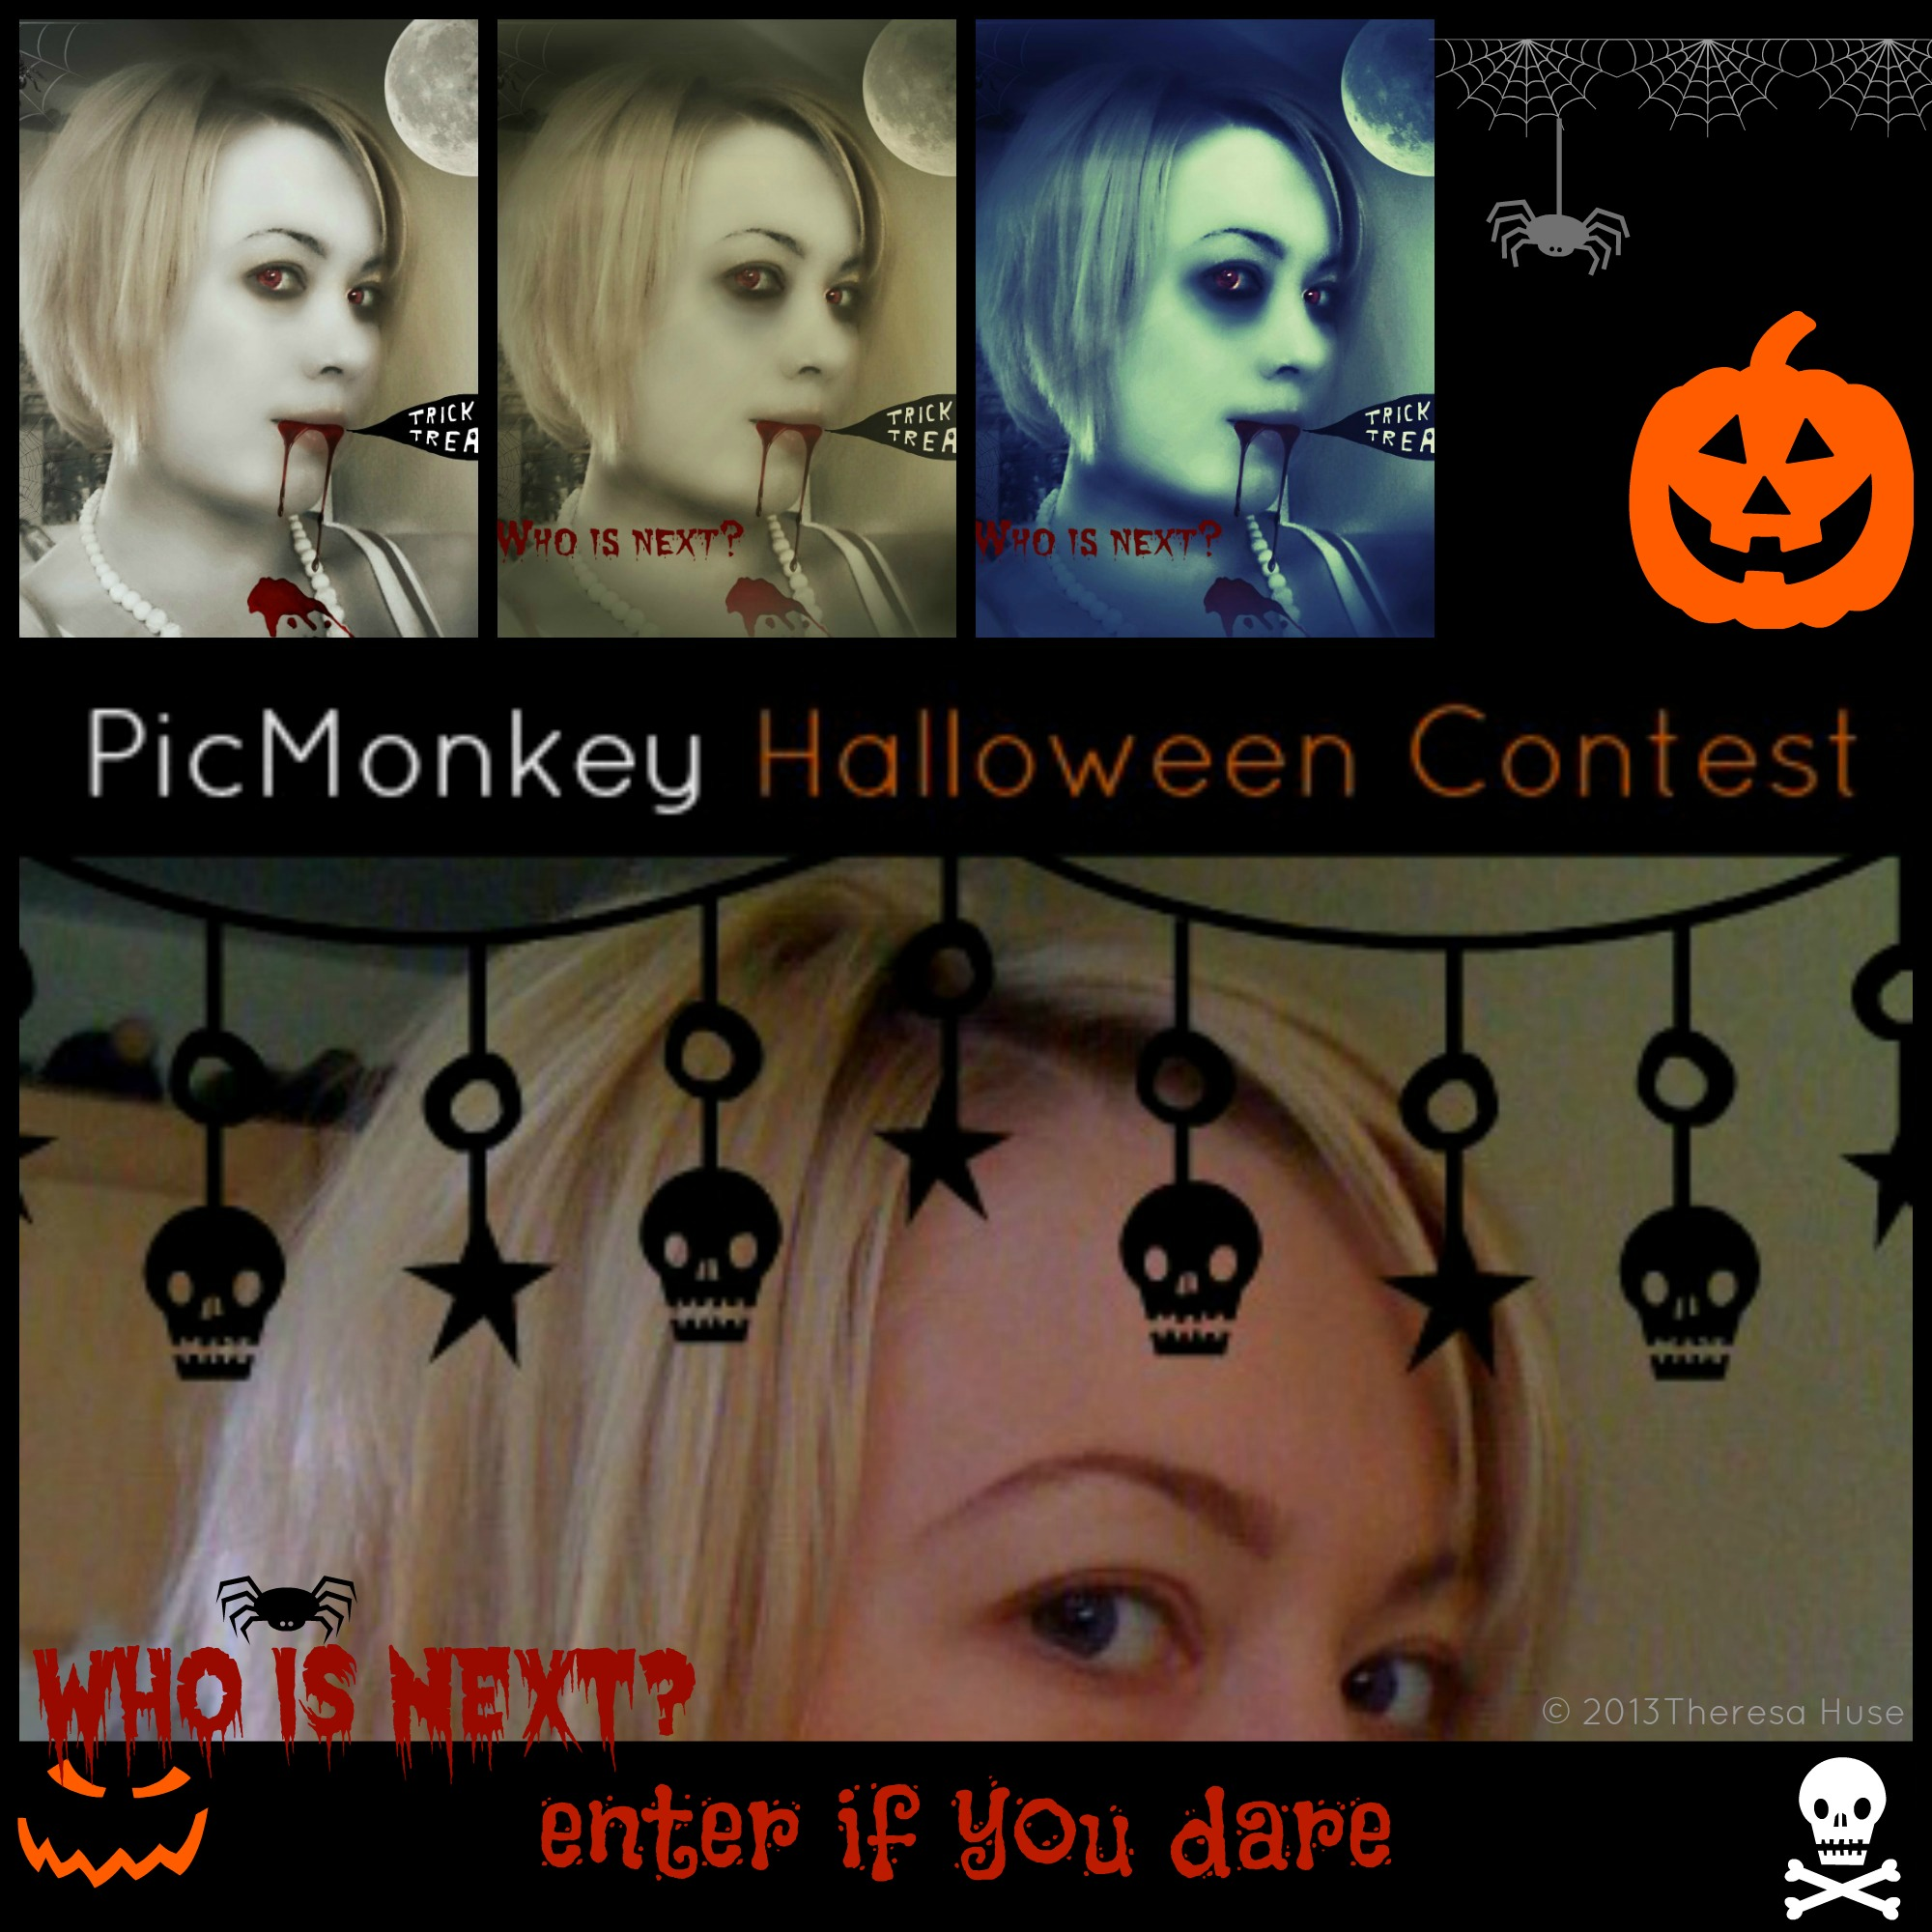 PicMonkey Halloween Contest #PicMonkeyBOO Enter if You Dare!